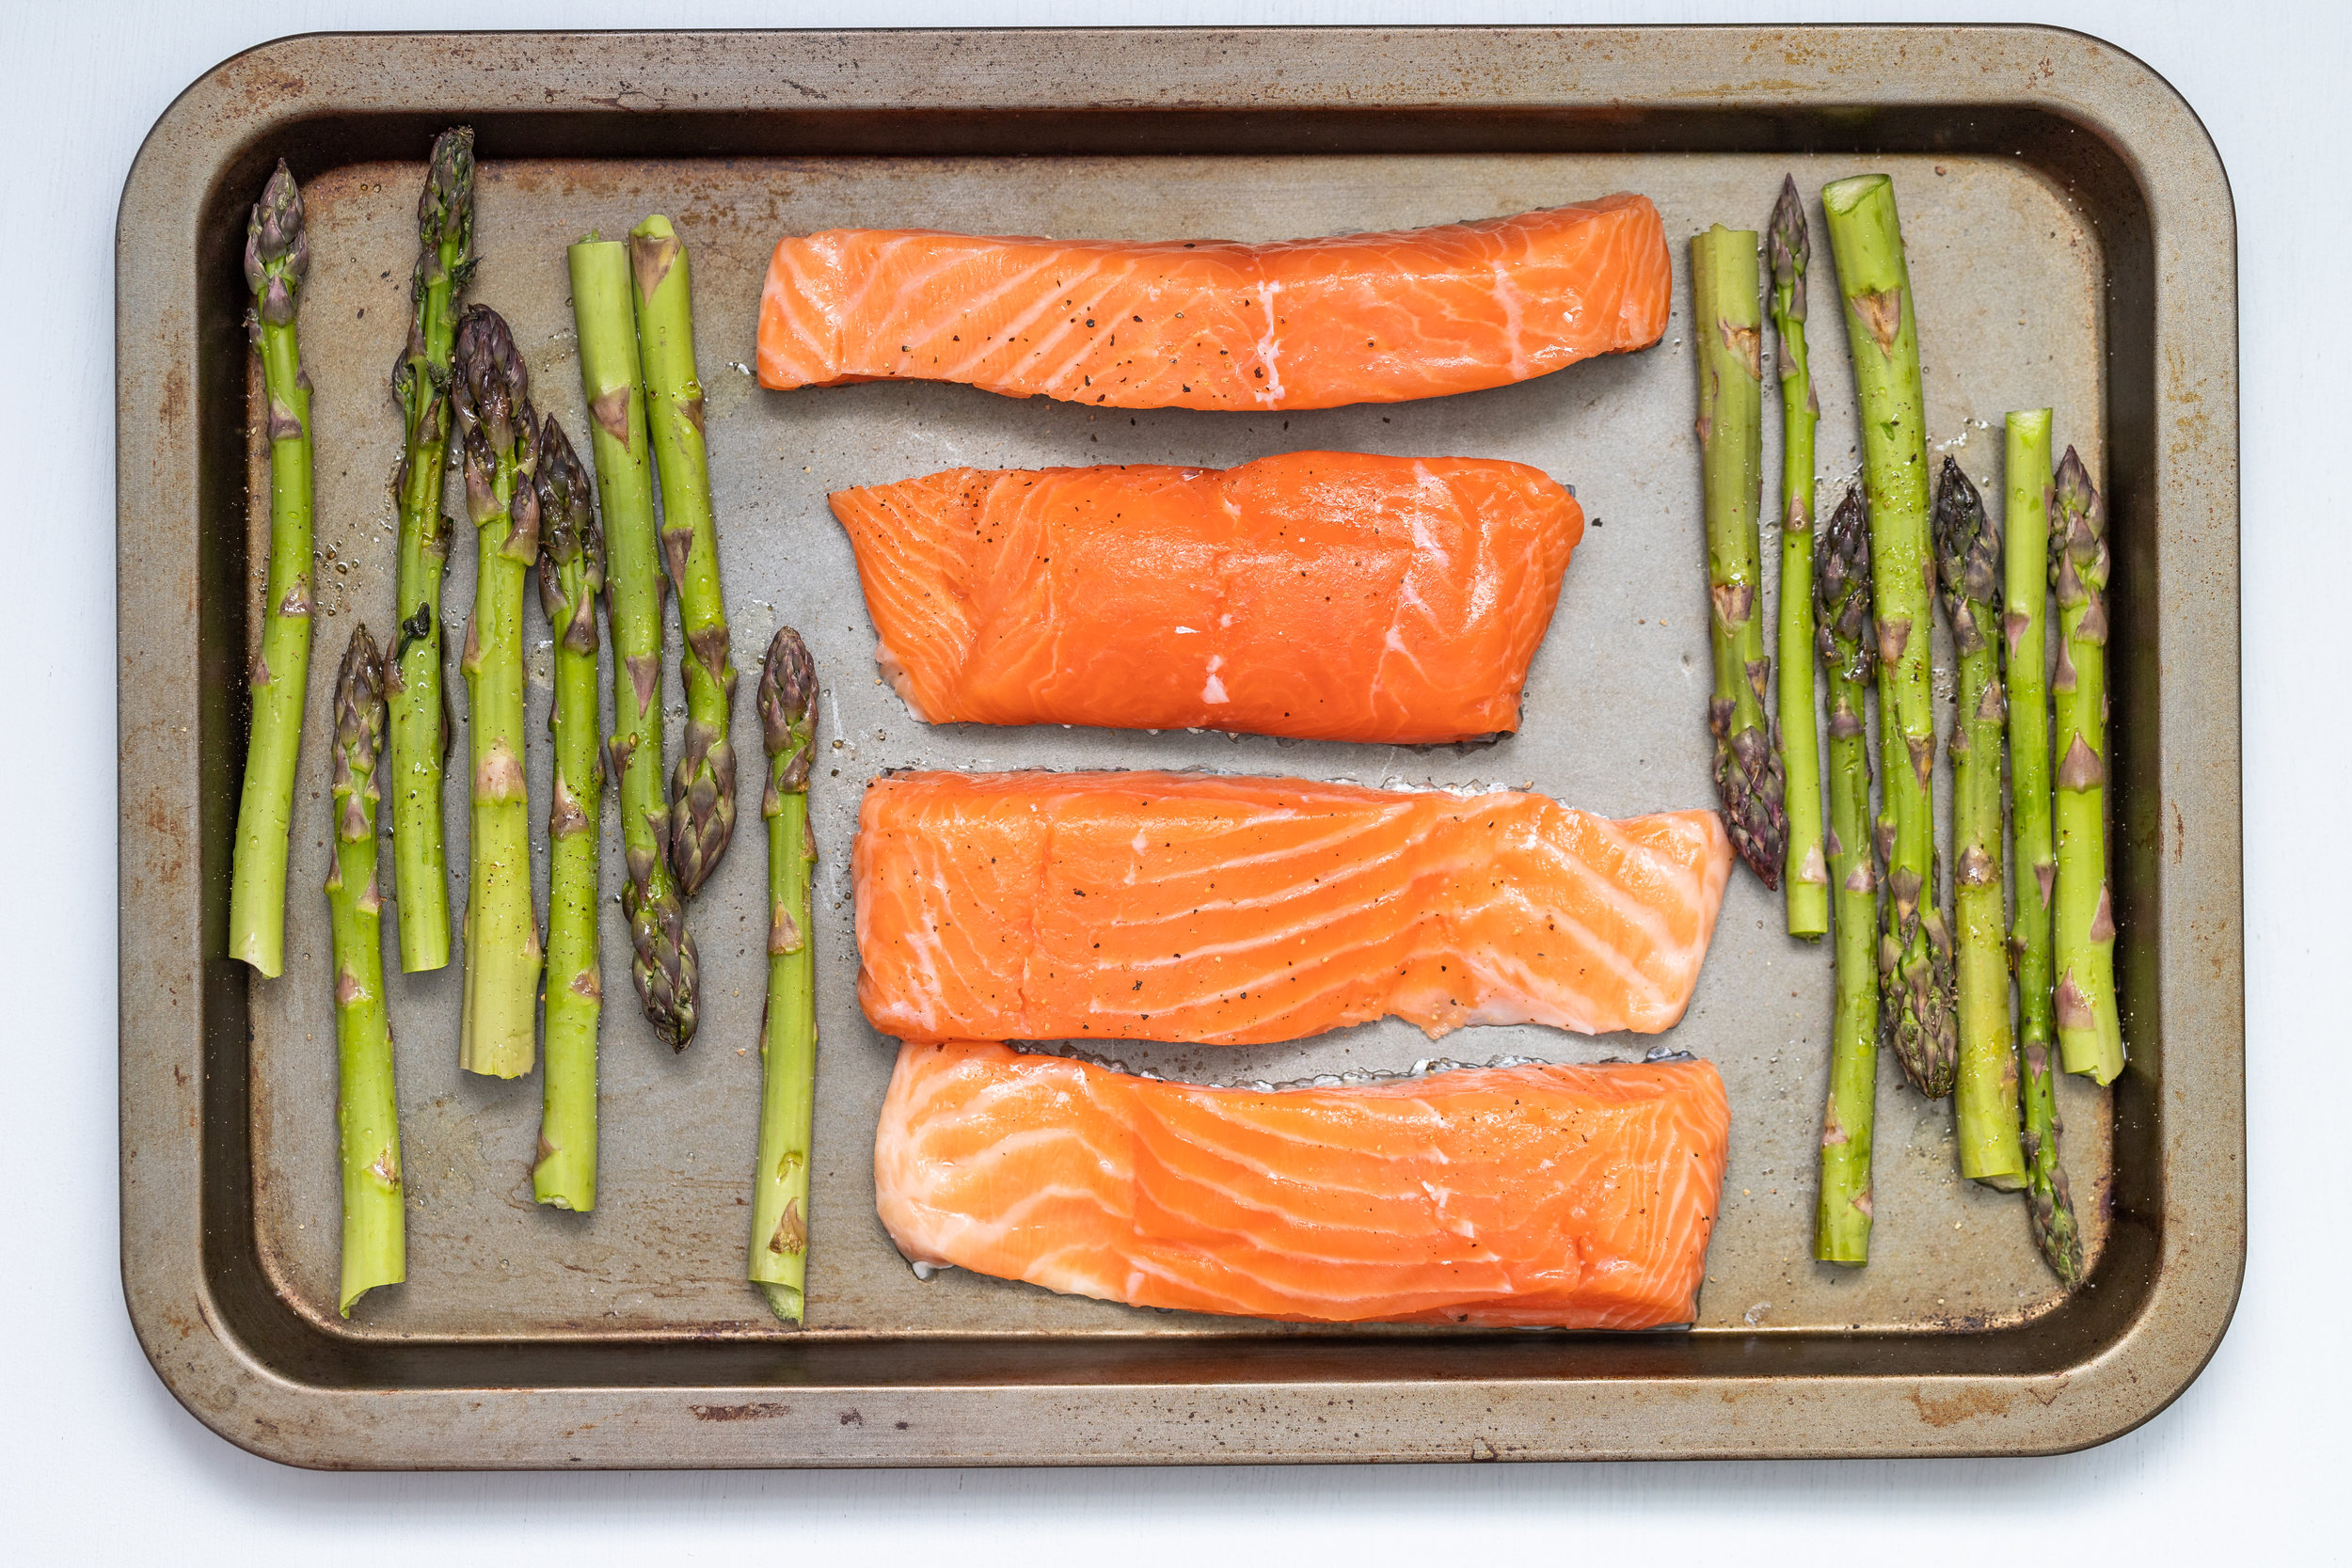 Bake it till you make it: salmon is great for your skin health